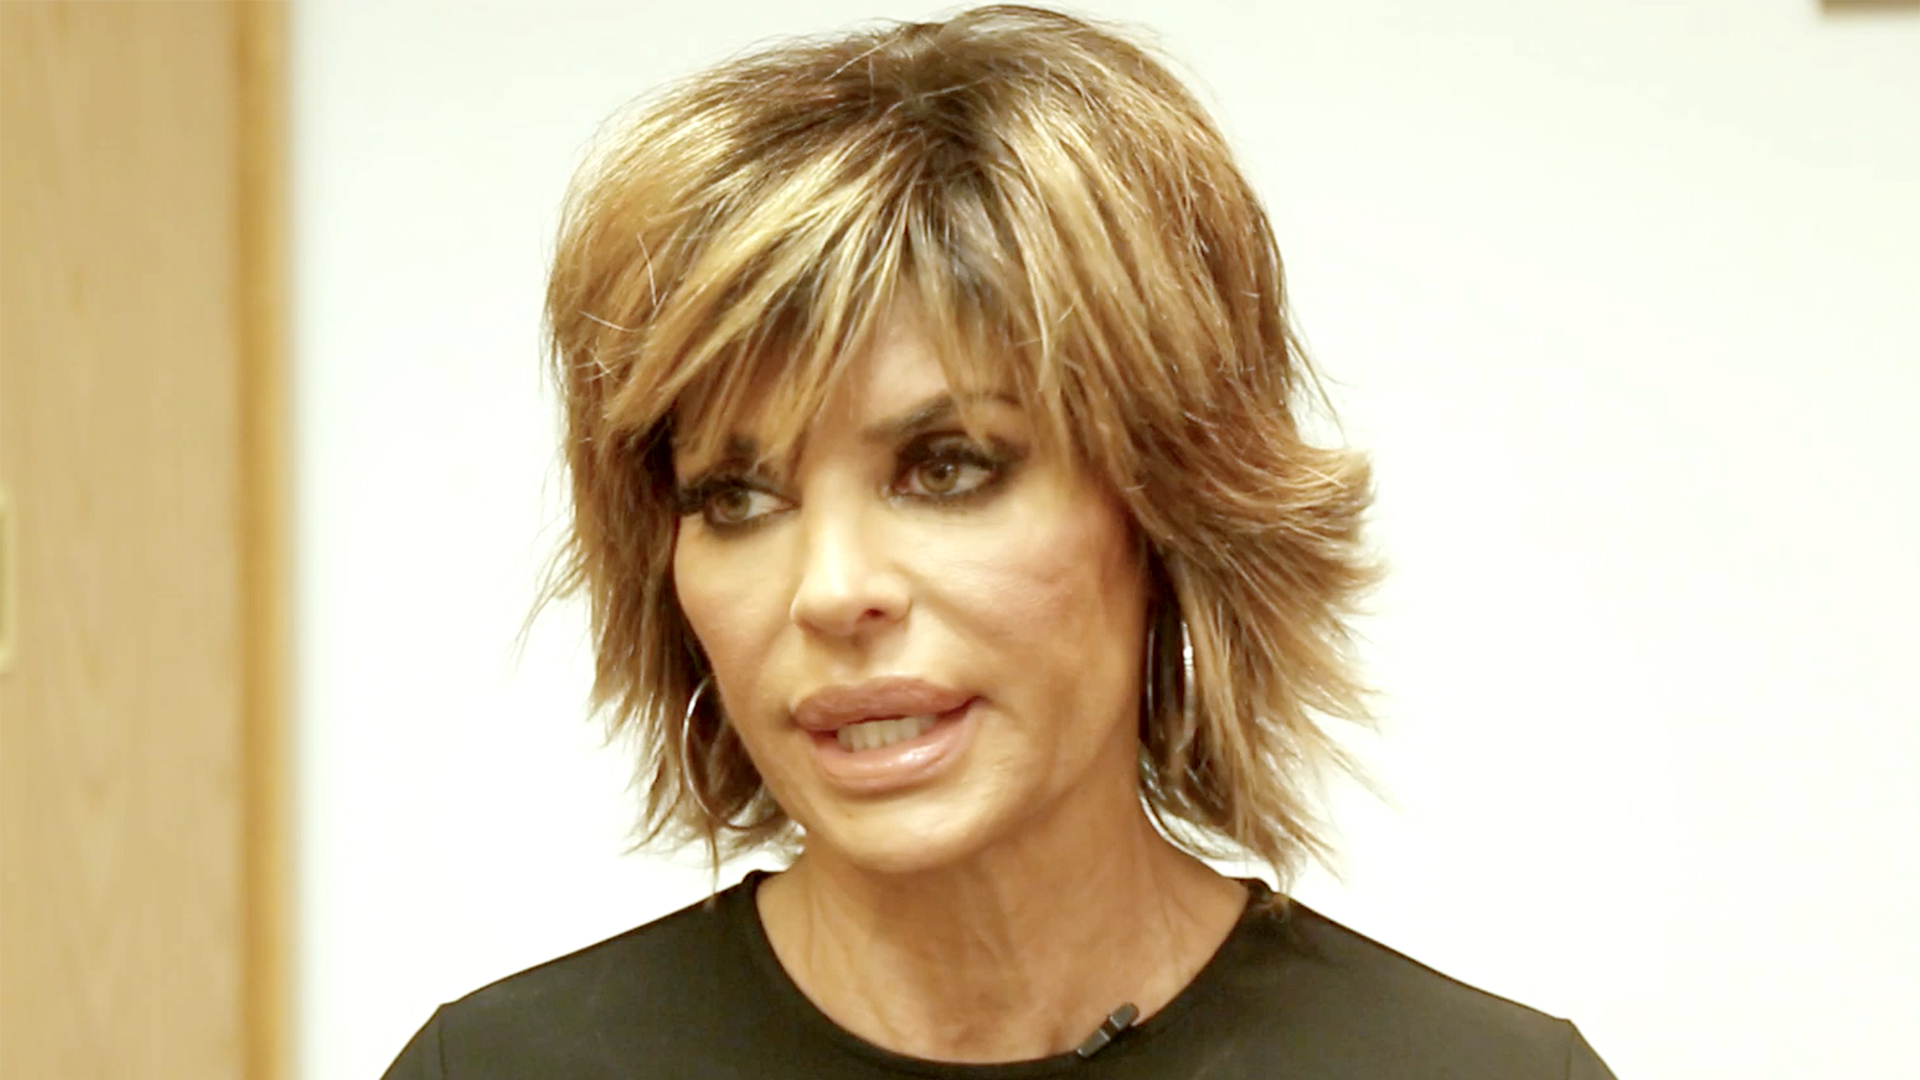 Lisa Rinna Looks Gorgeous with This New Shoulder-Length Lob Hairstyle